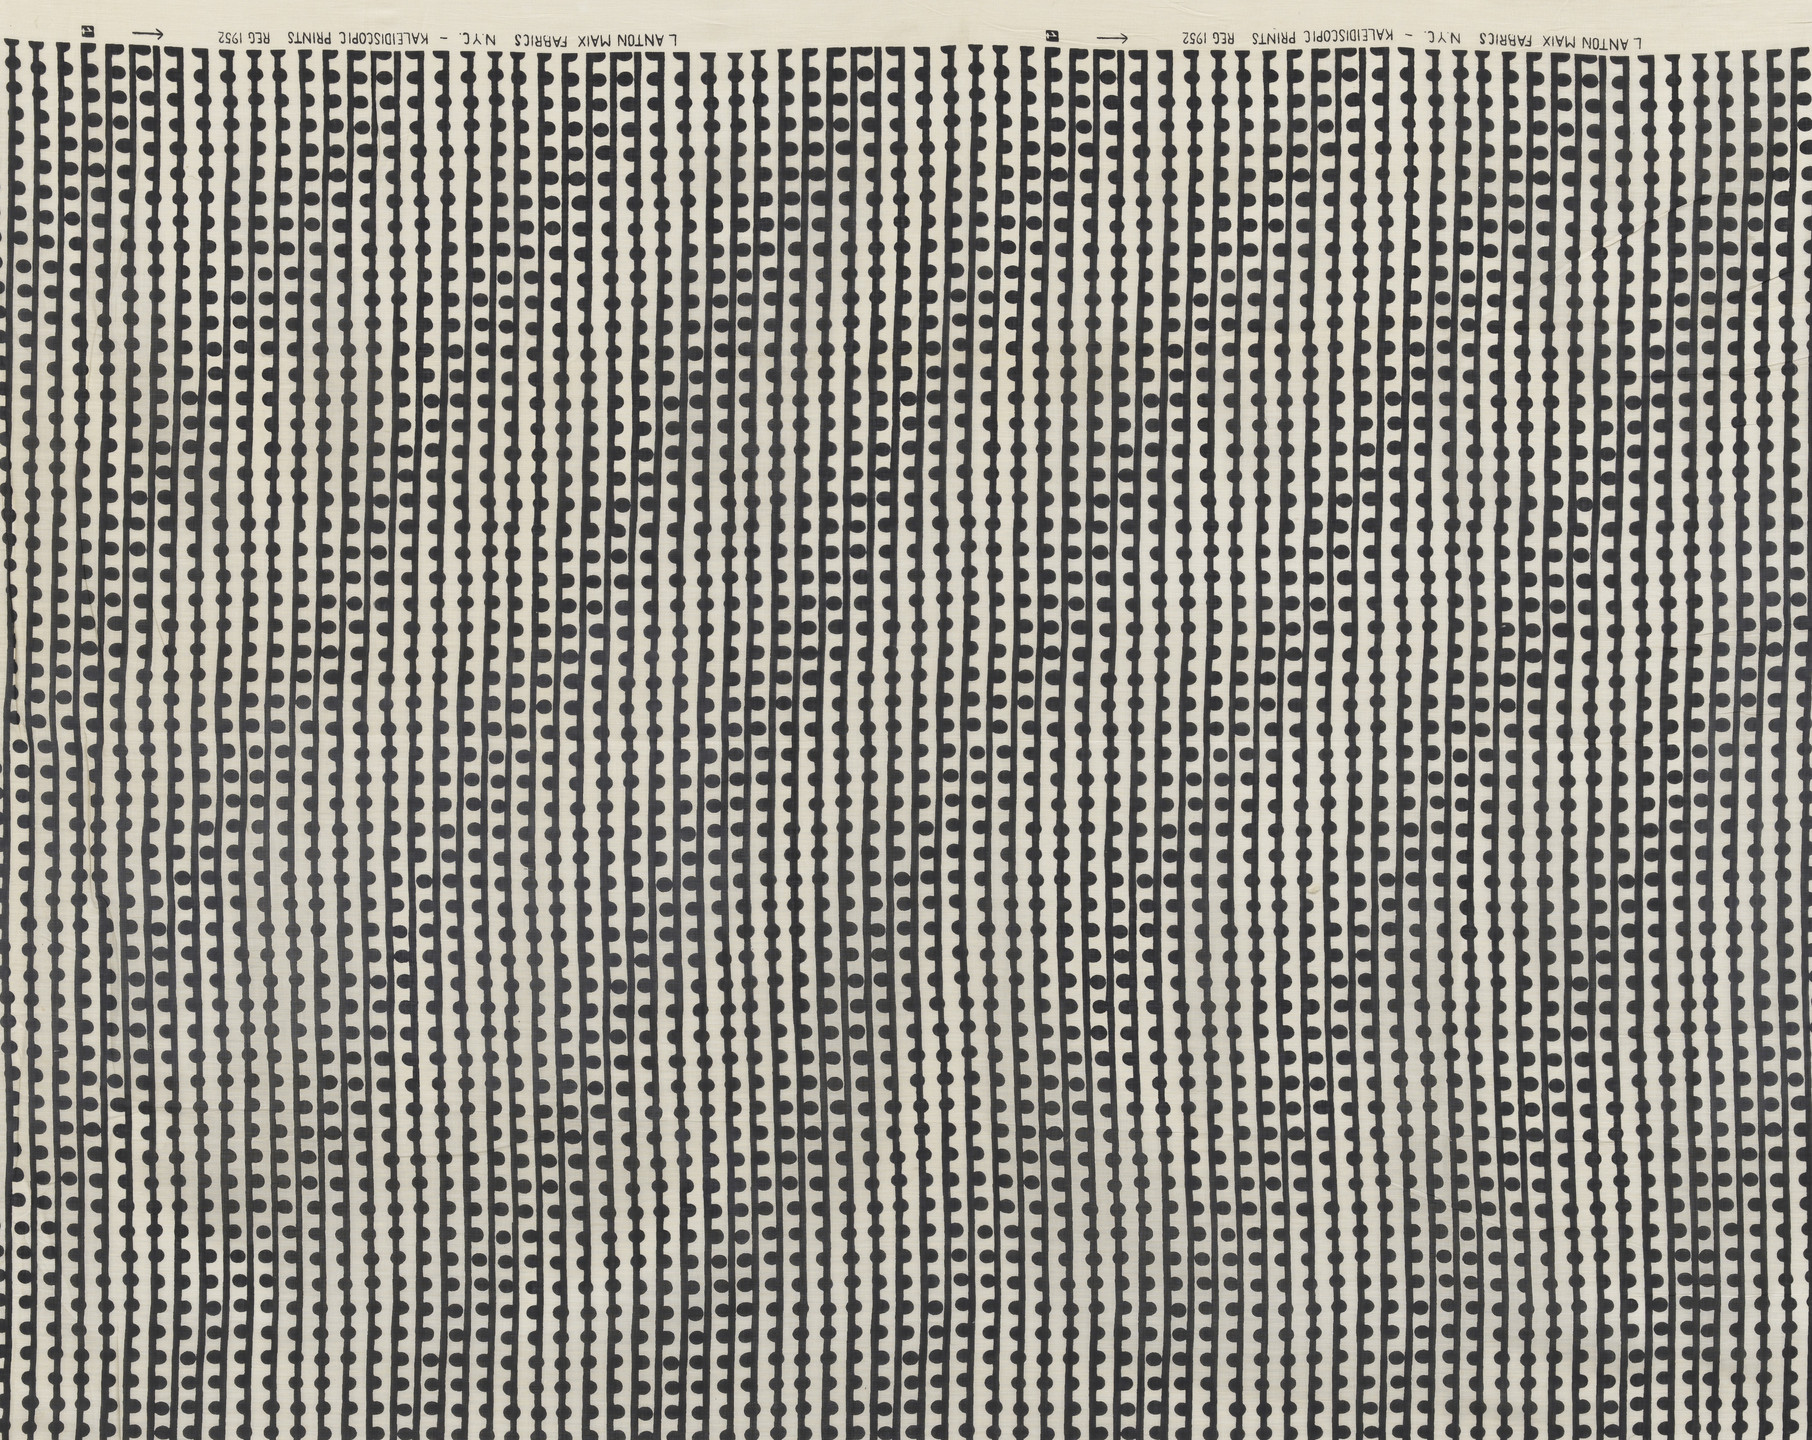 Herbert Bayer. Dot Dash Dot sheer fabric. c. 1952